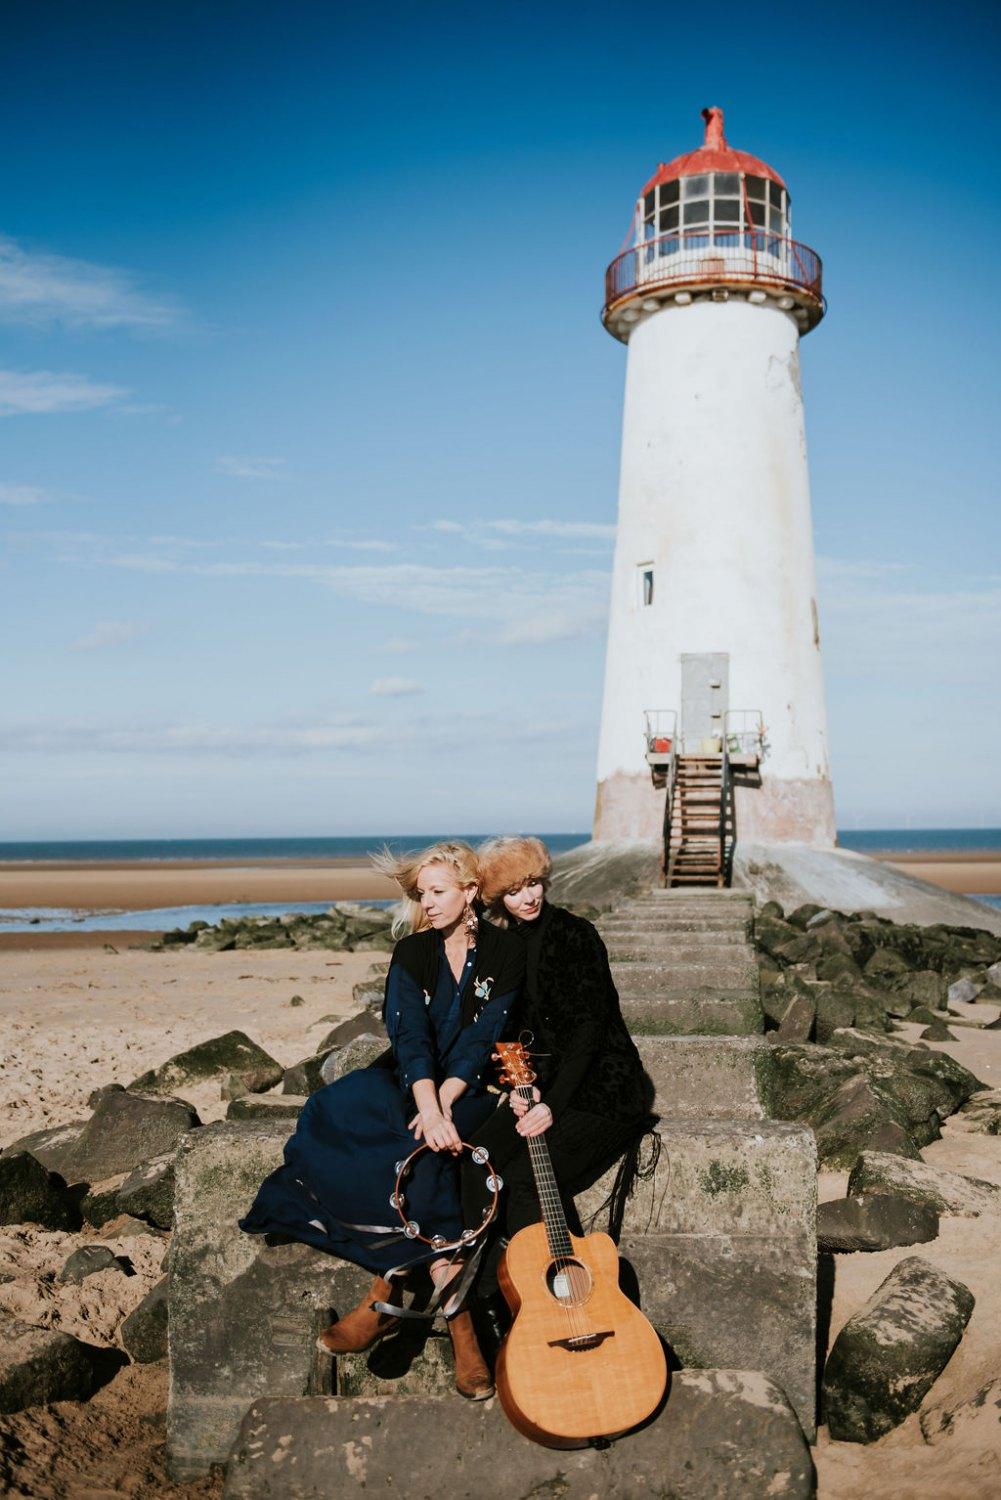 Two women outside a lighthouse